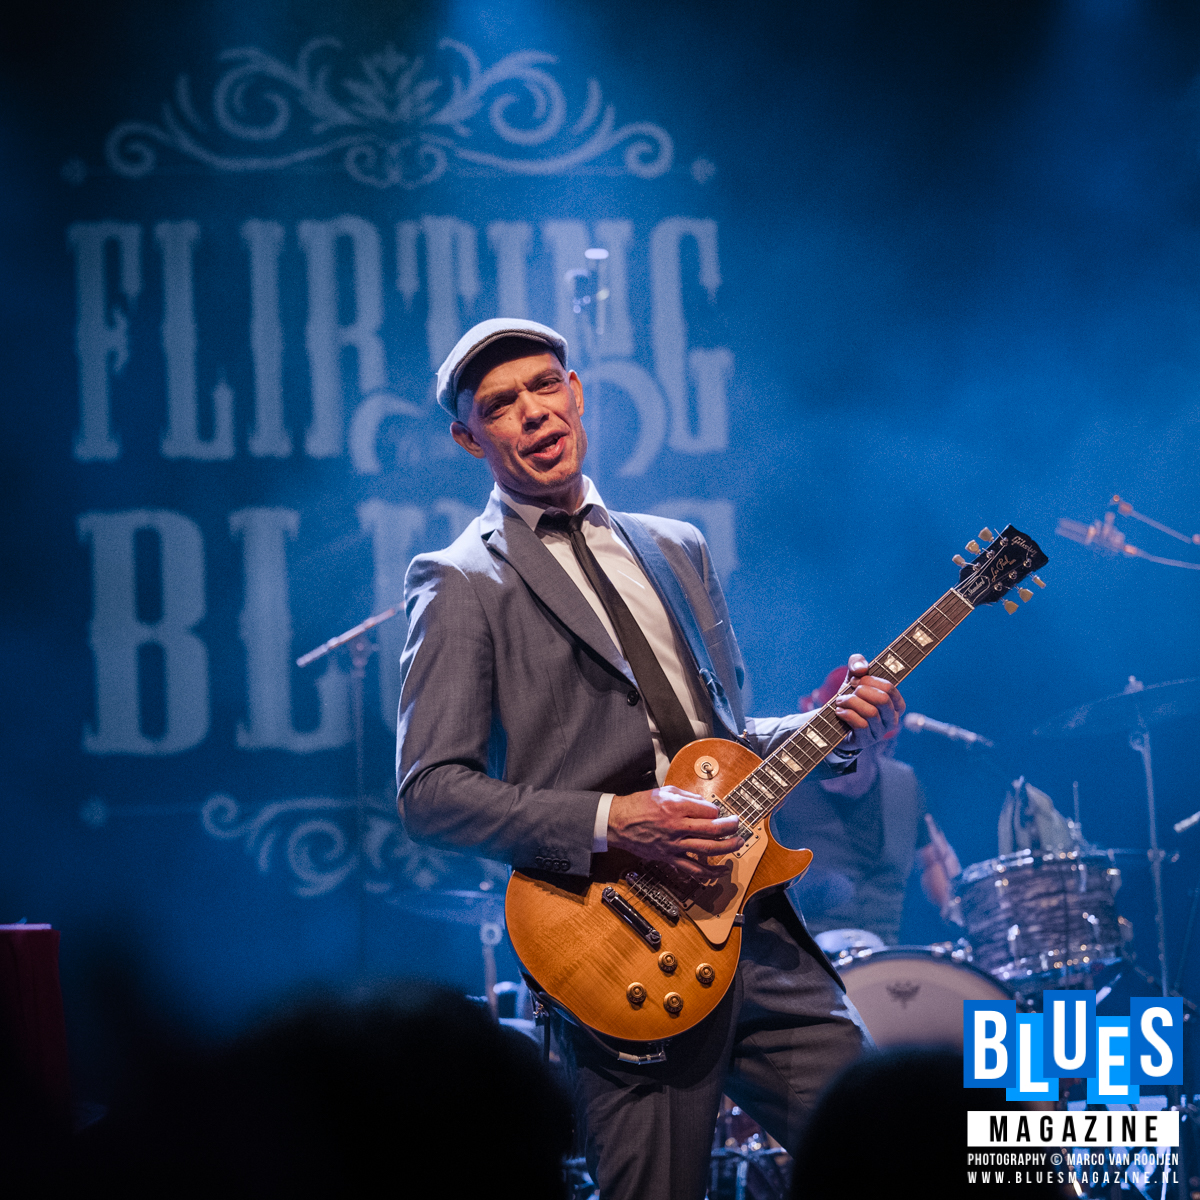 Thorbjørn Risager & The Black Tornado @ Flirting with the Blues 2019